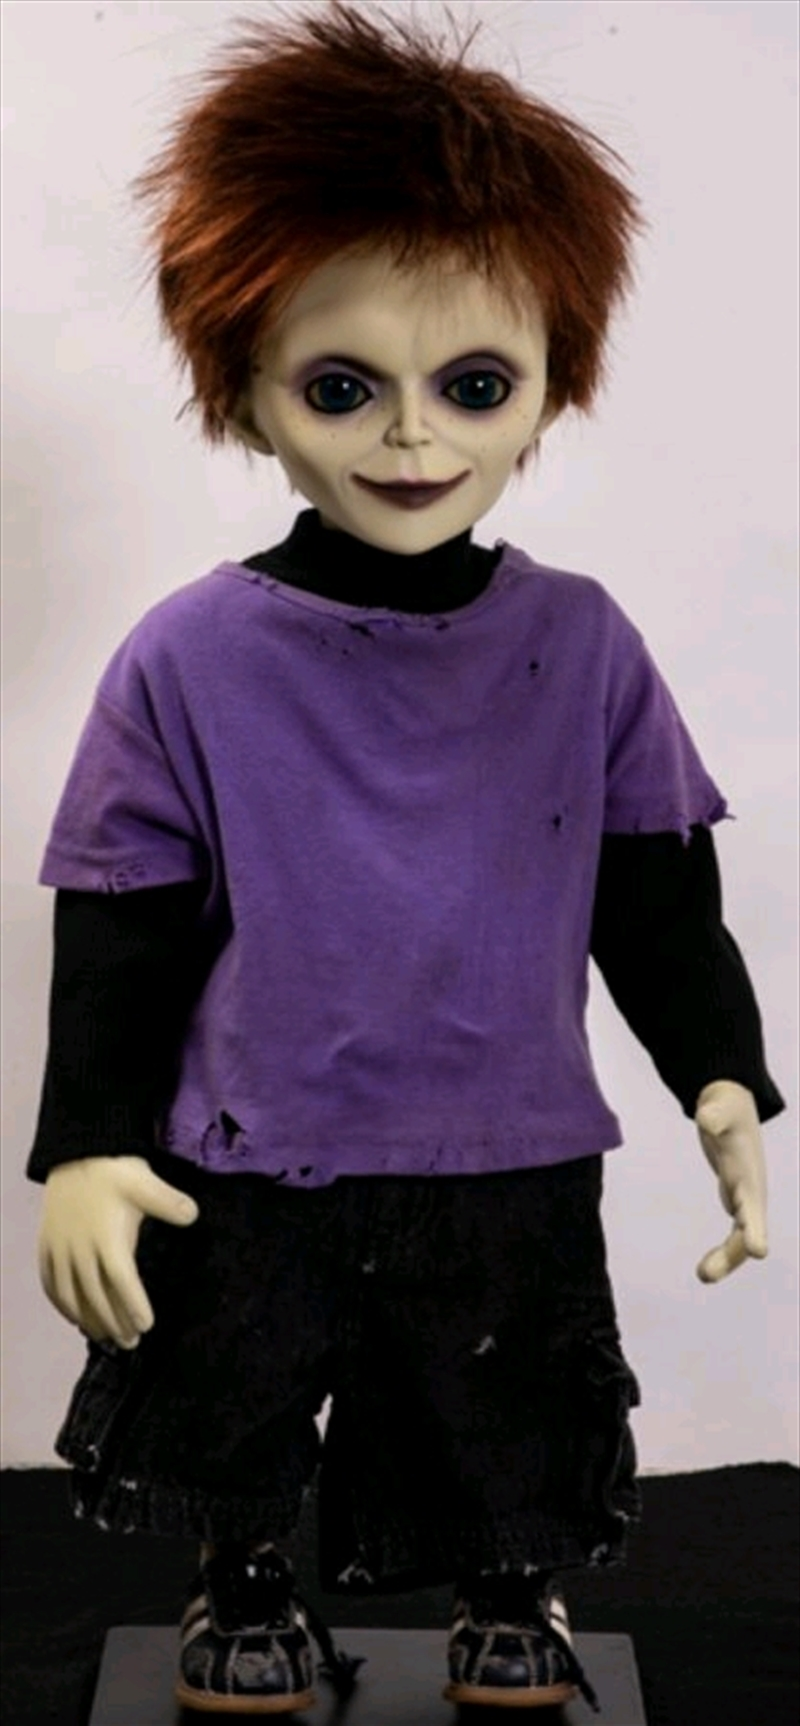 Child's Play 5: Seed of Chucky - Glen 1:1 Doll | Collectable